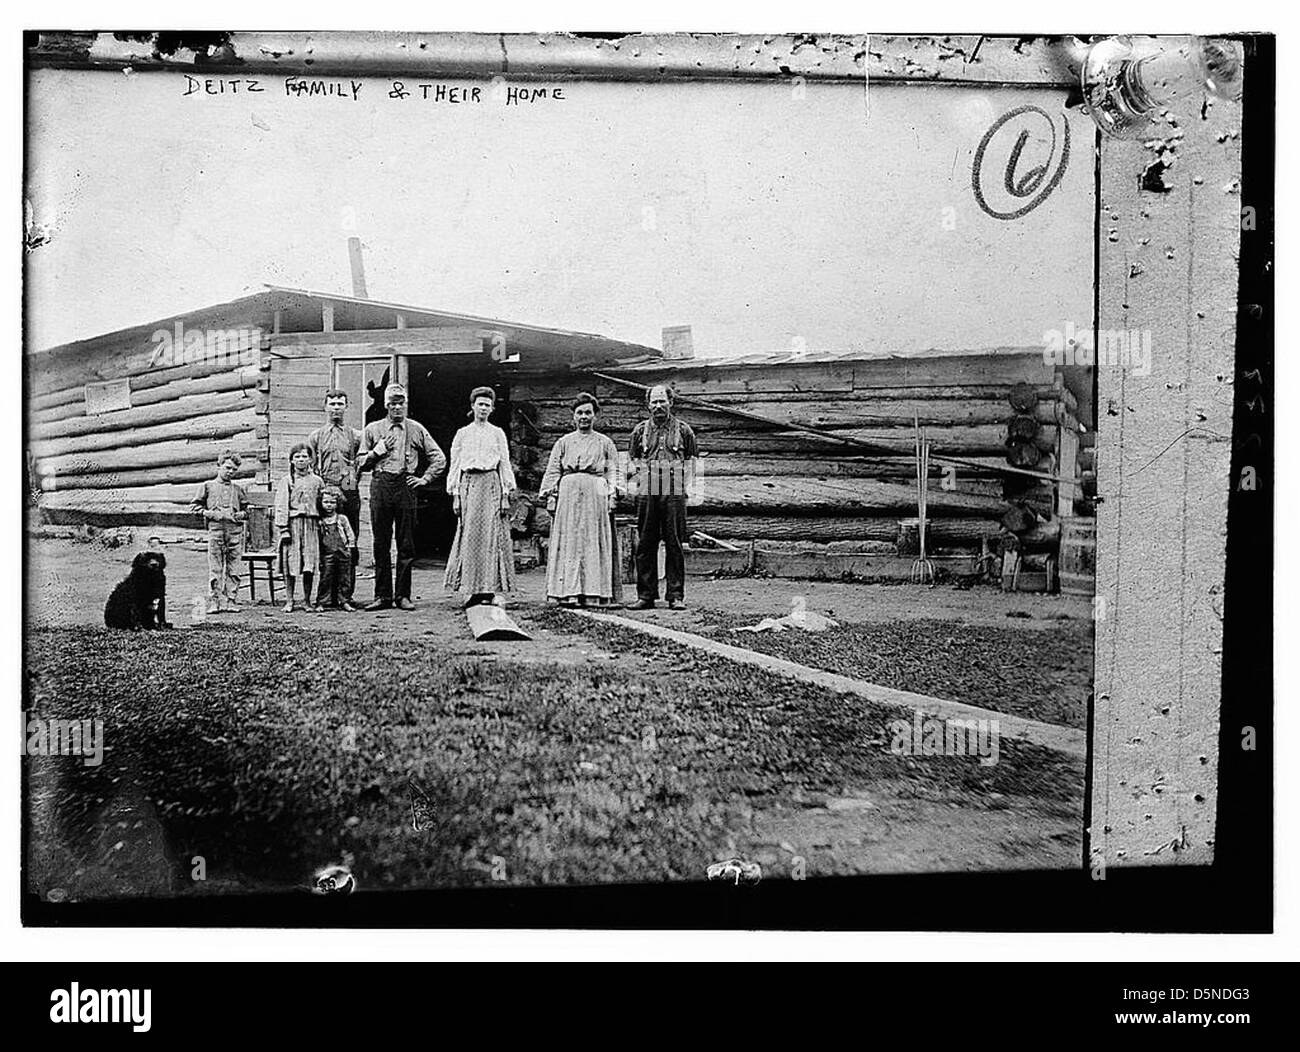 Deitz Family & their home (LOC) - Stock Image